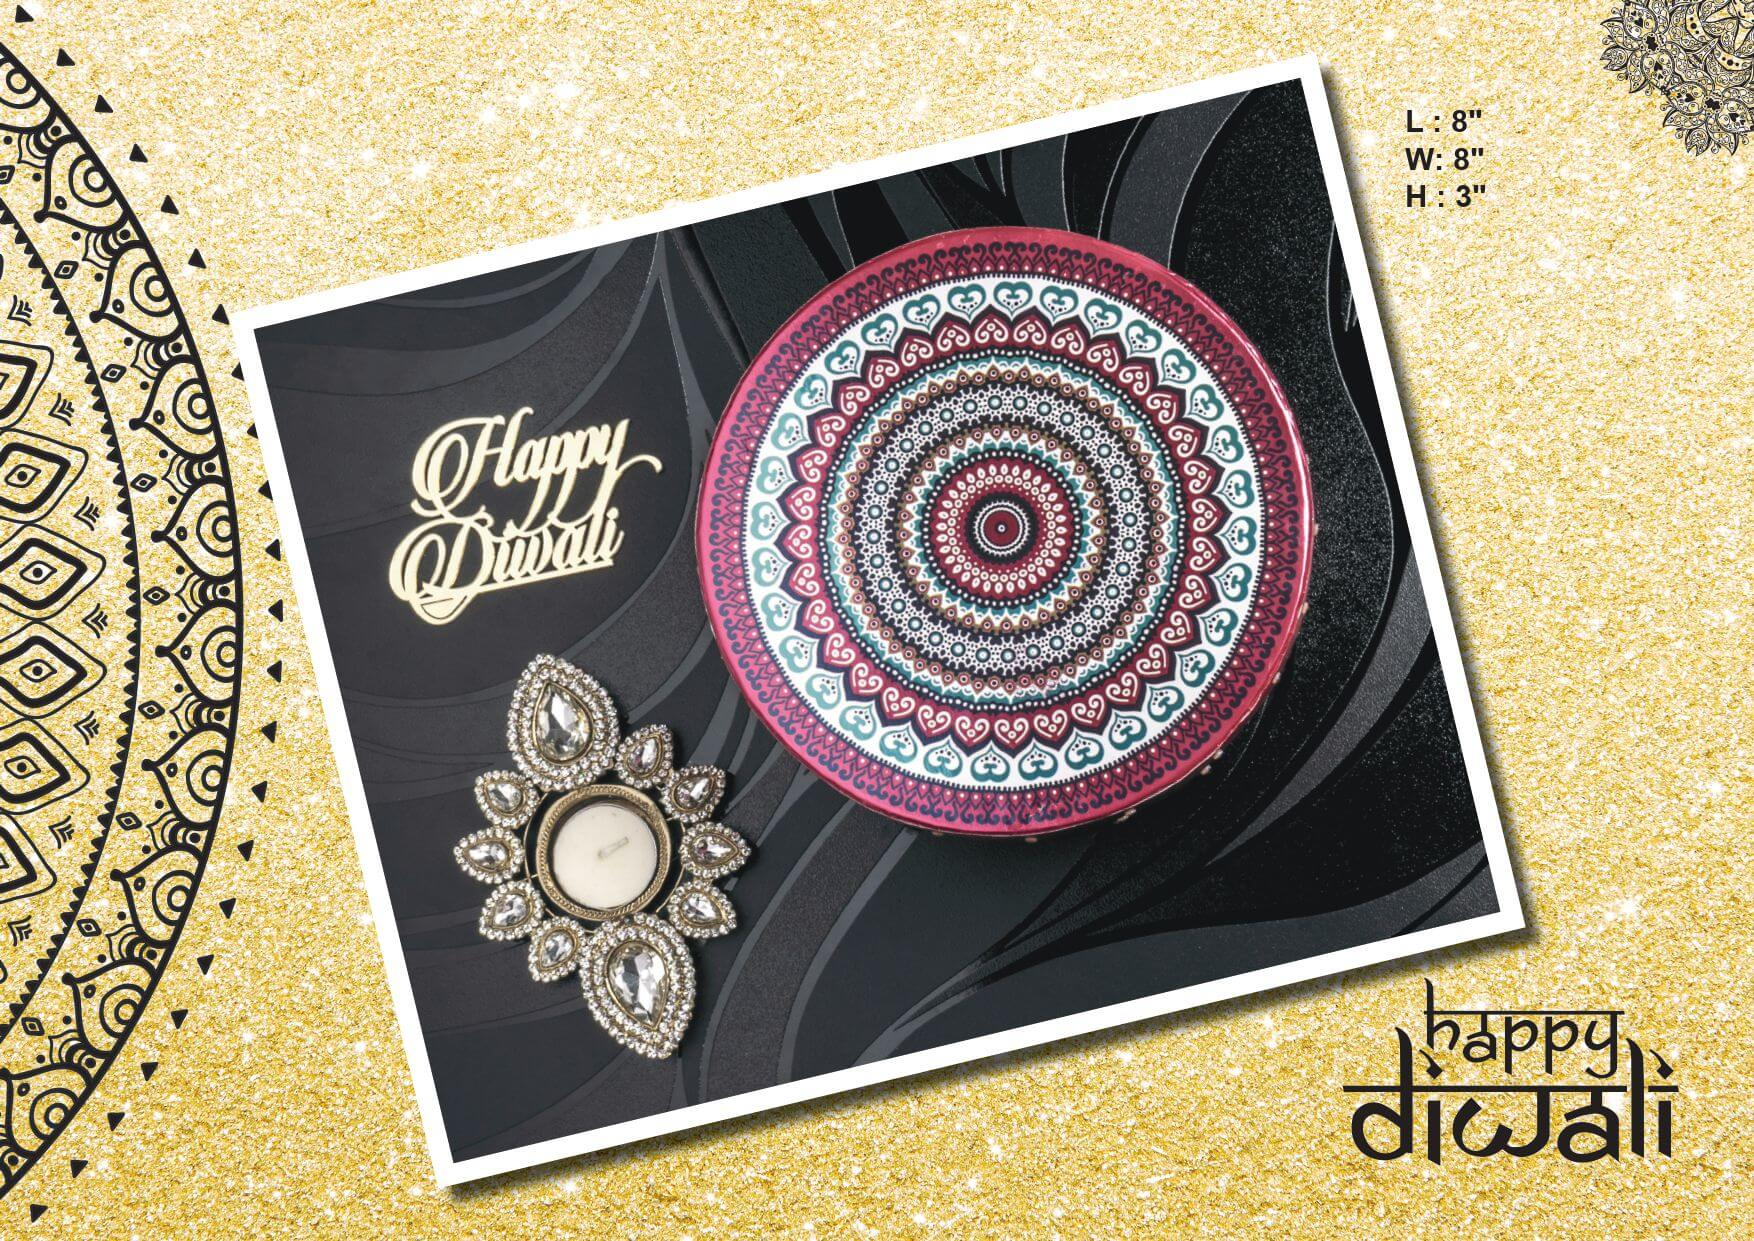 Diwali Gift Ideas 2021 PRODUCT NO 010